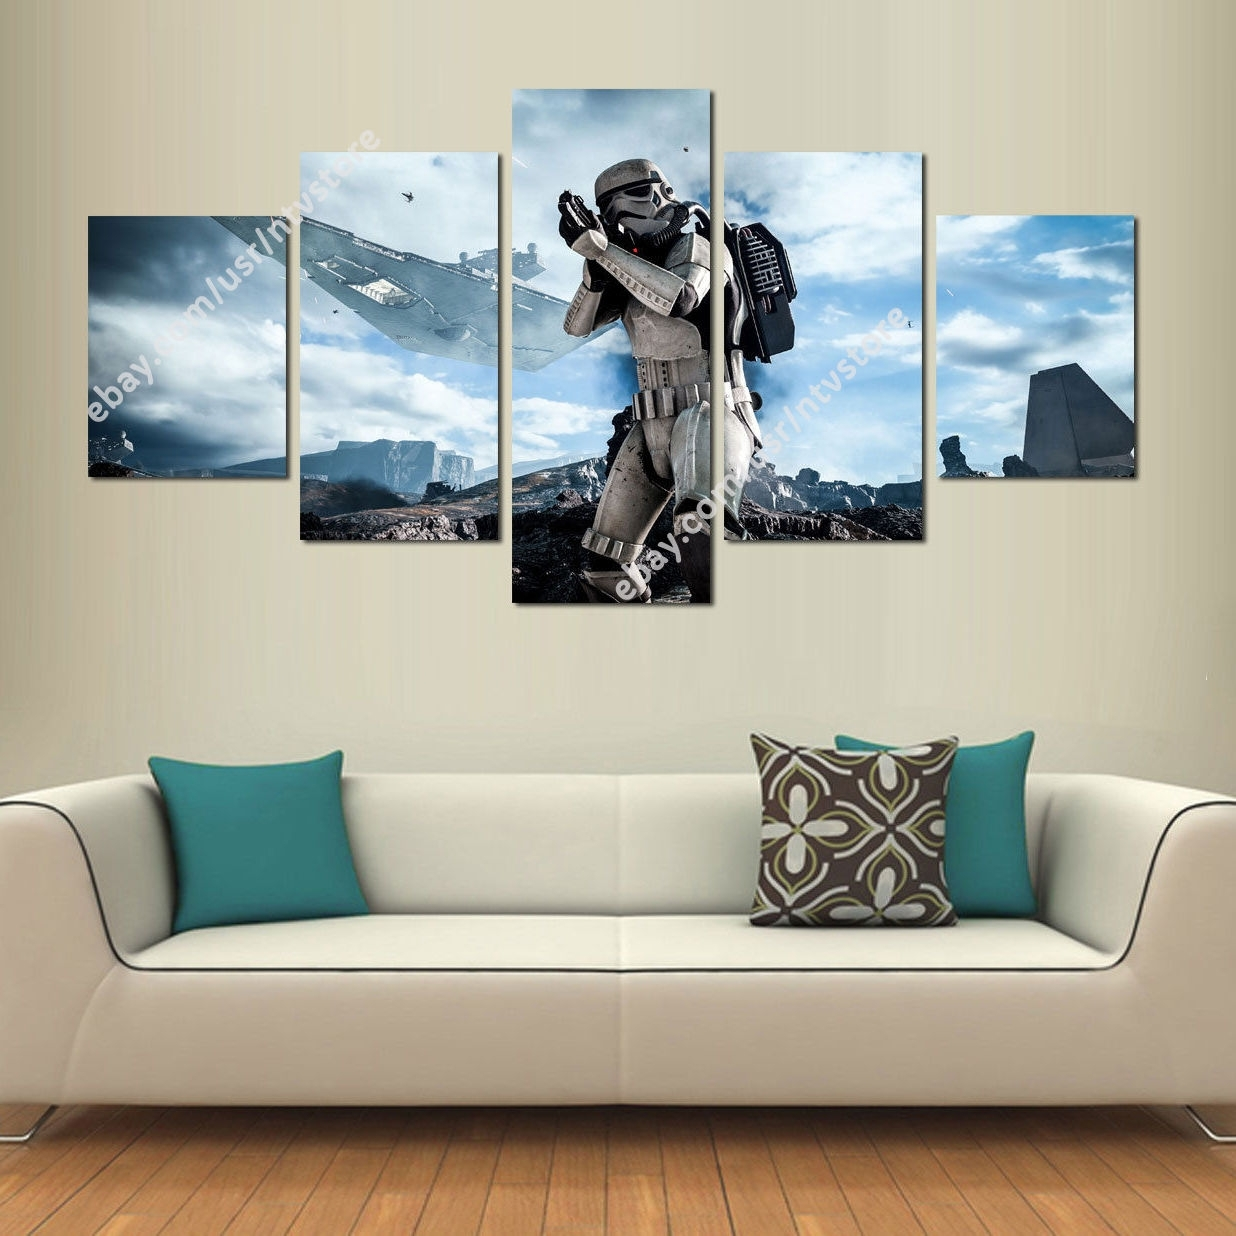 Star Wars Battlefront Stormtrooper Canvas Wall Art Print Set 5 Piece Regarding Current 5 Piece Canvas Wall Art (View 19 of 20)